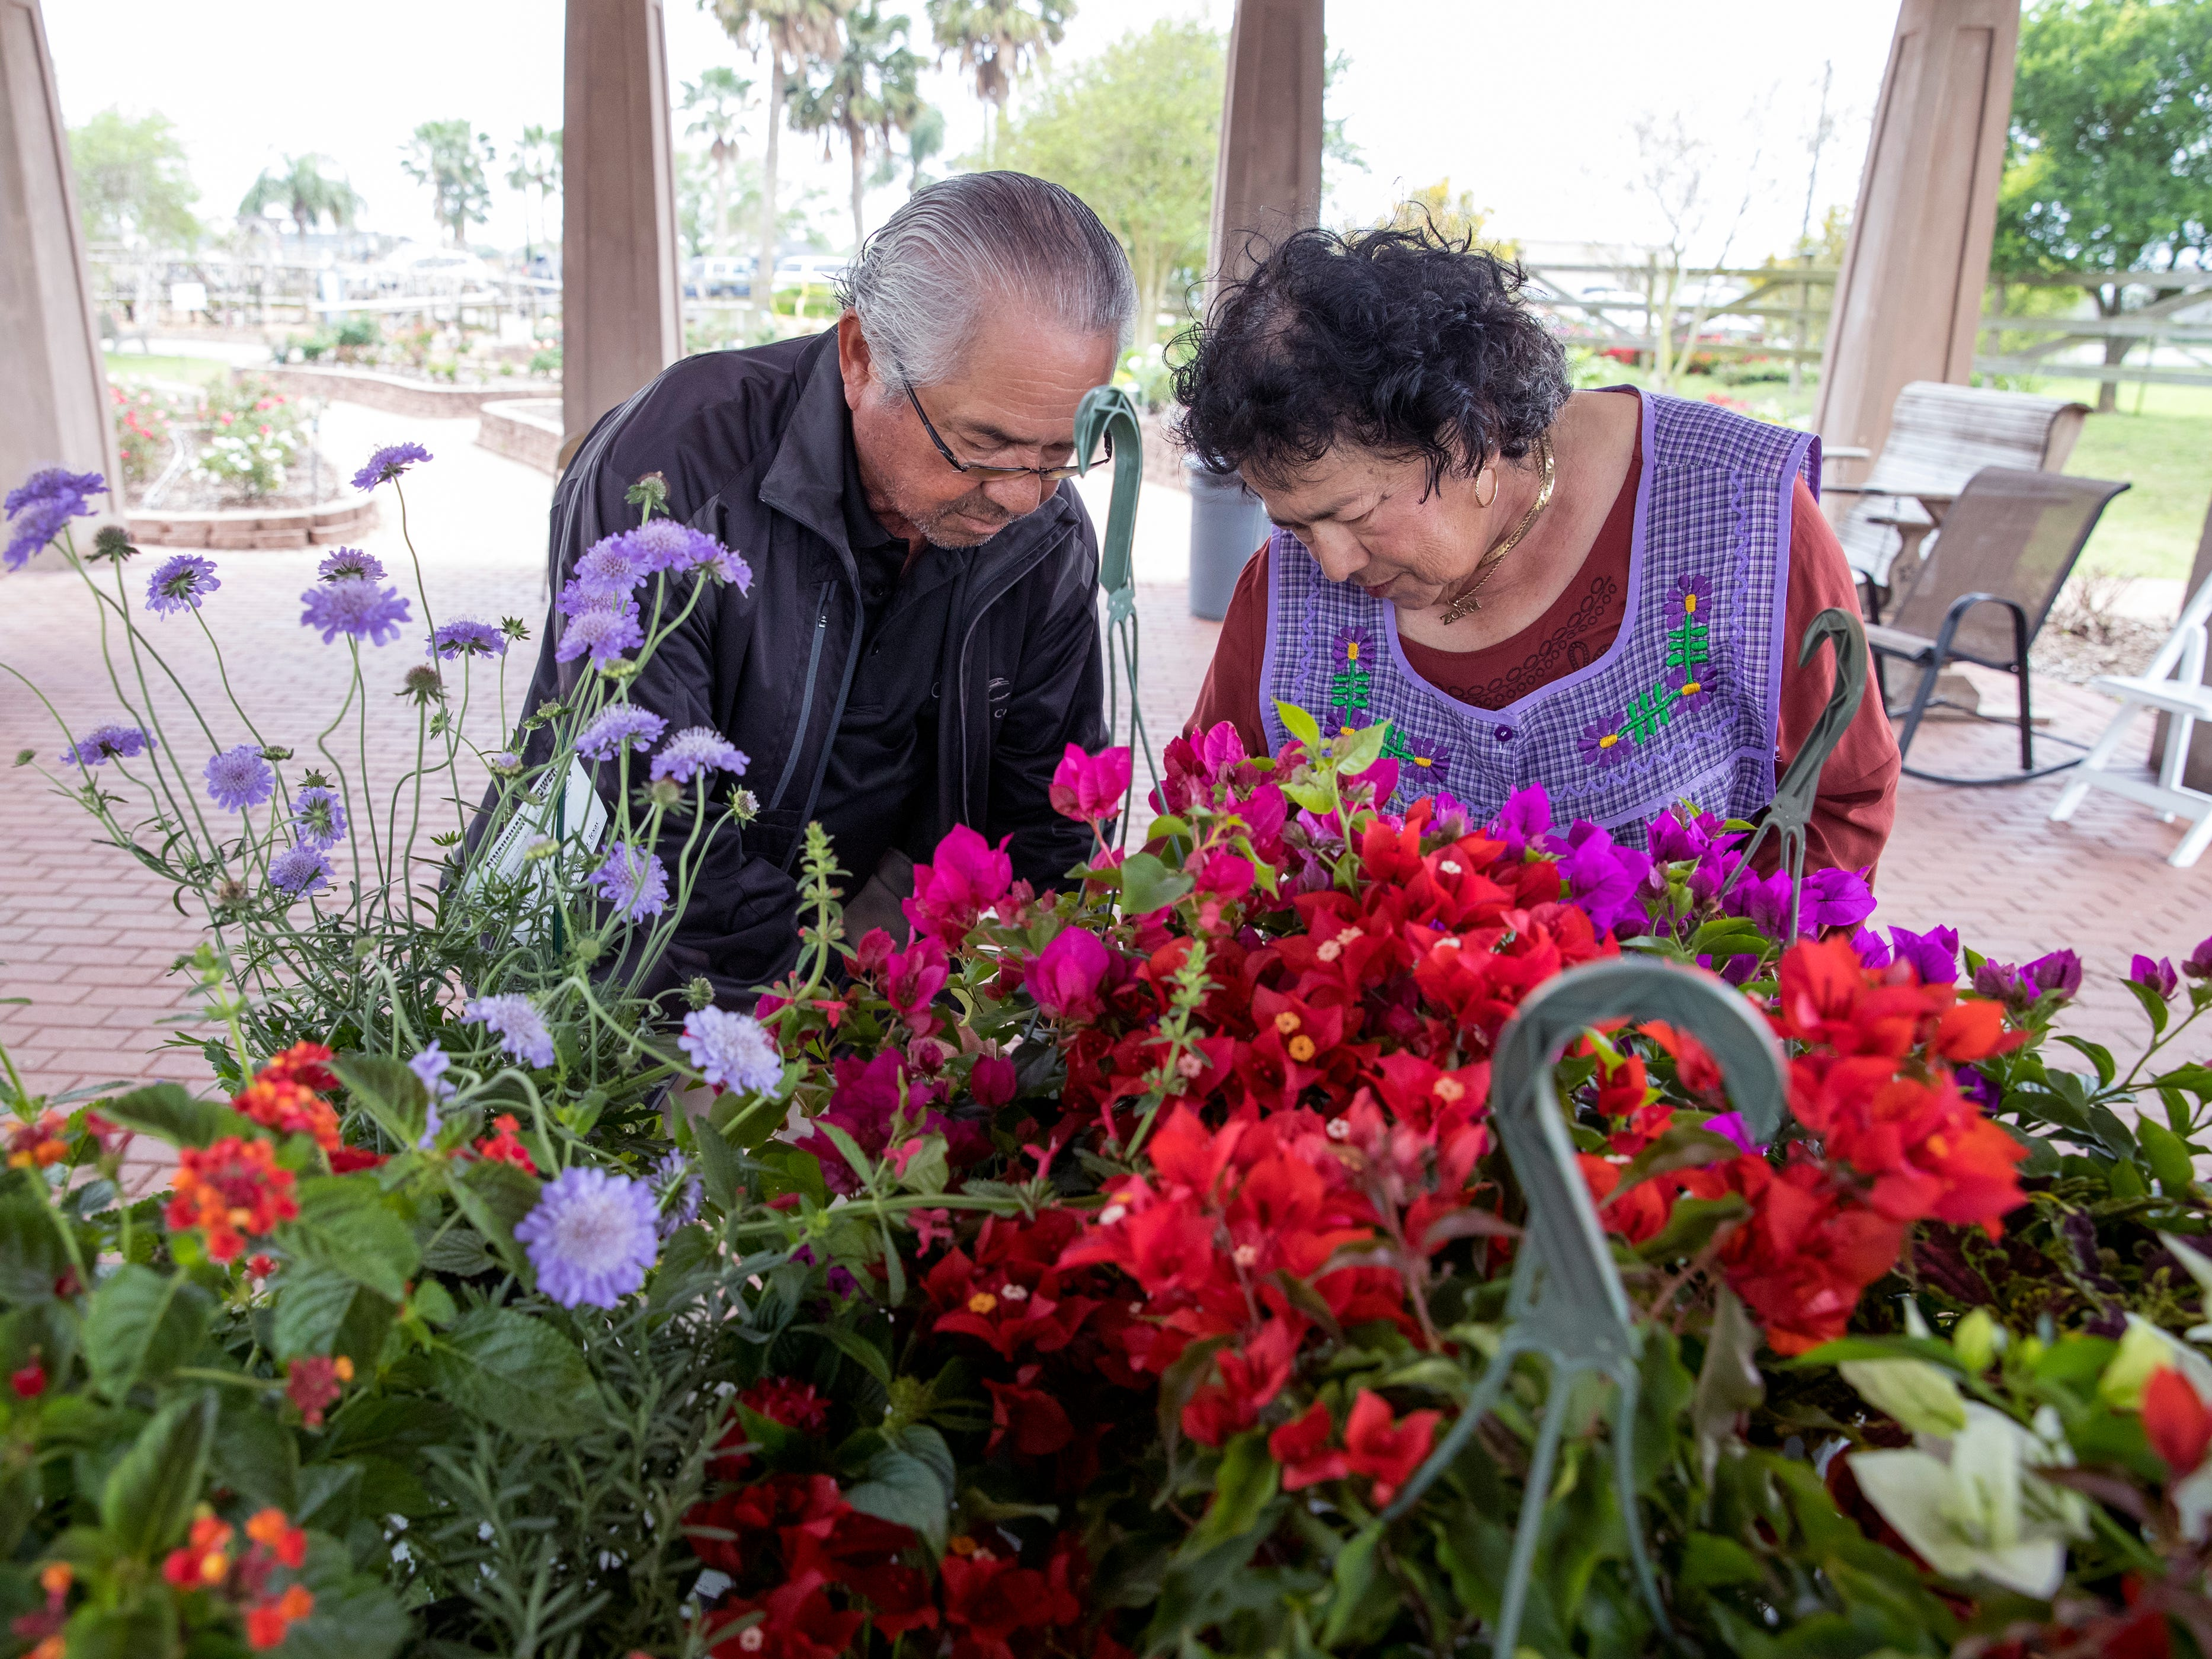 Volunteers Felix Ramirez and Oralia Ramirez price plants on Thursday, April 4, 2019 in preparation for the annual Big Bloom which is Saturday at the South Texas Botanical Gardens & Nature Center. Thousands of varieties of plants have been ordered from wholesalers for the event. Nueces Master Gardeners will be on hand to help visitors pick their plants and answer care questions.